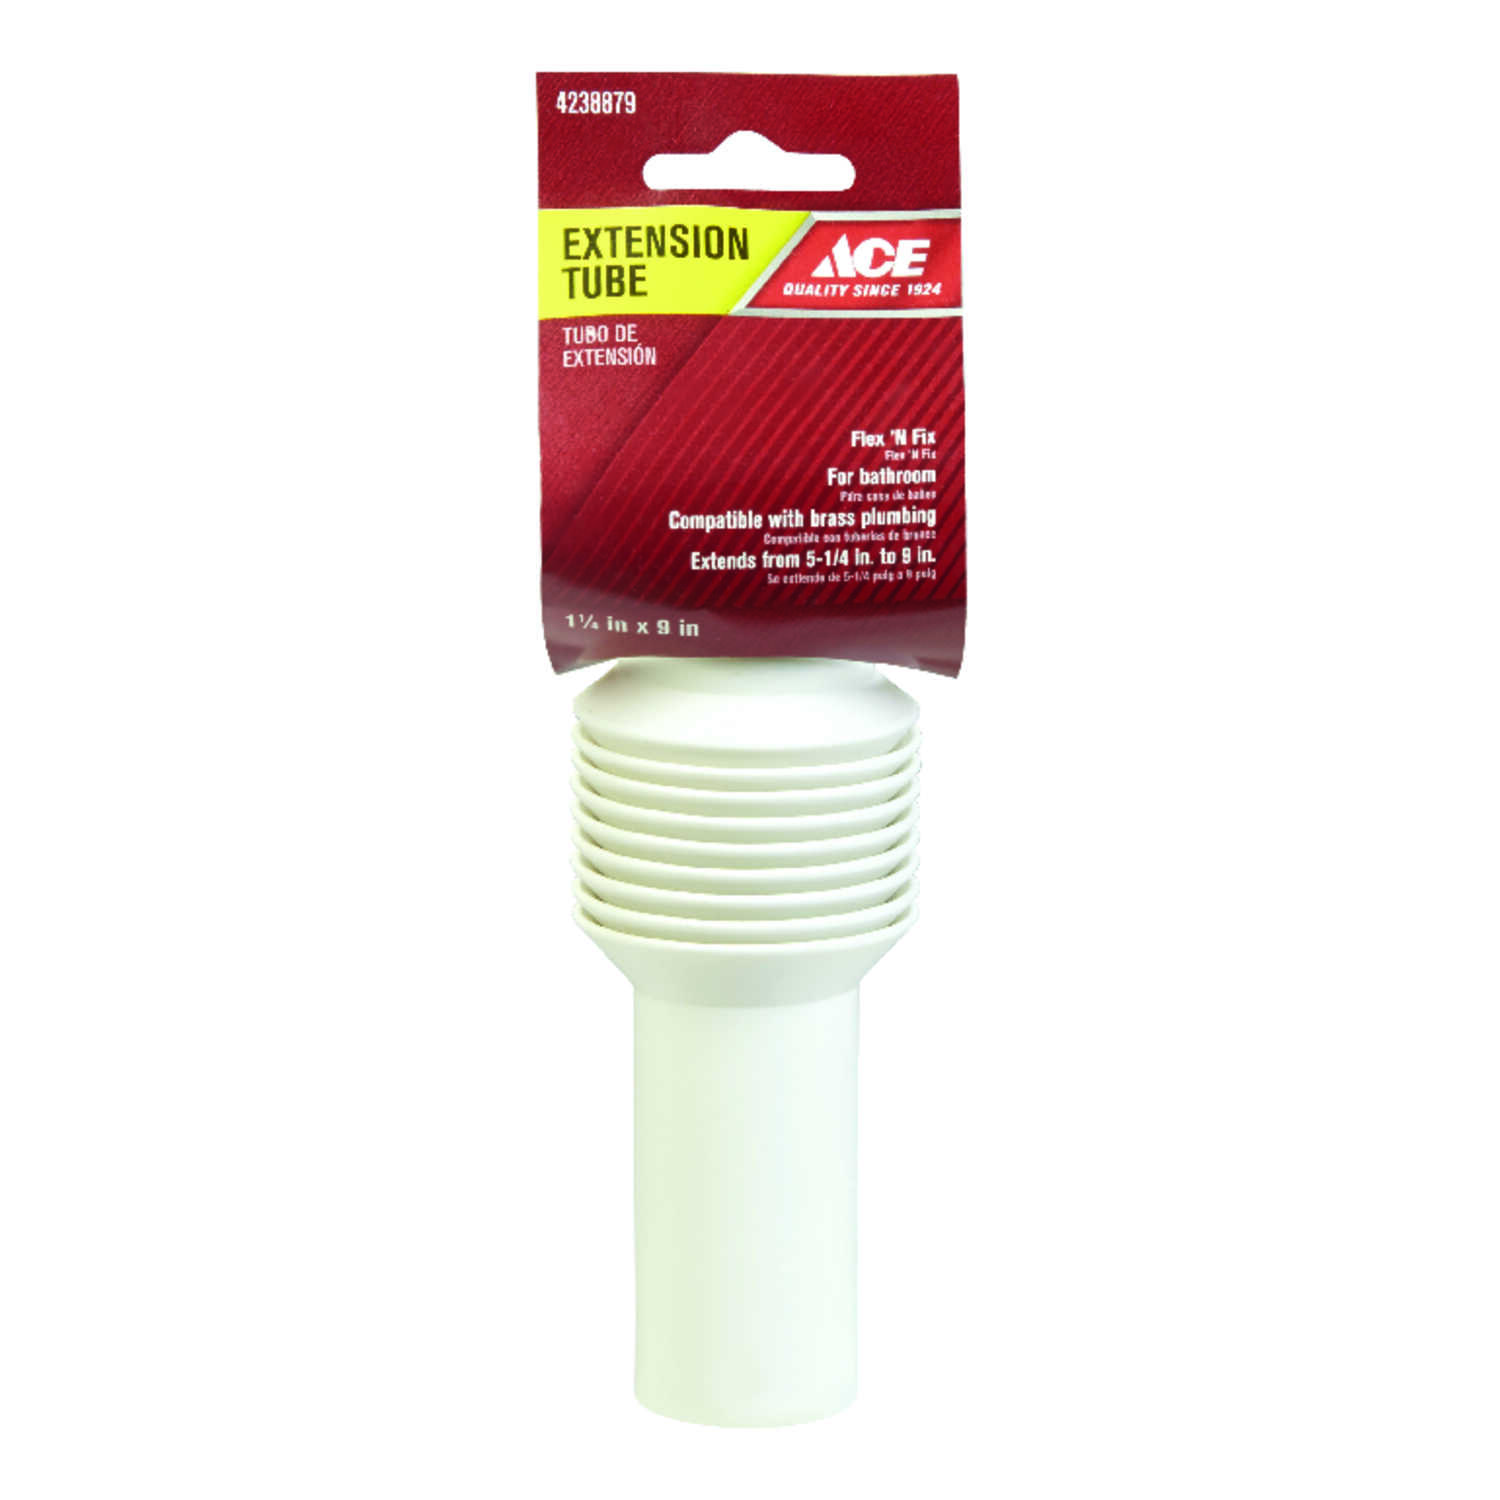 Ace  1-1/4 in. Dia. x 9 in. L Extension Tube  Plastic